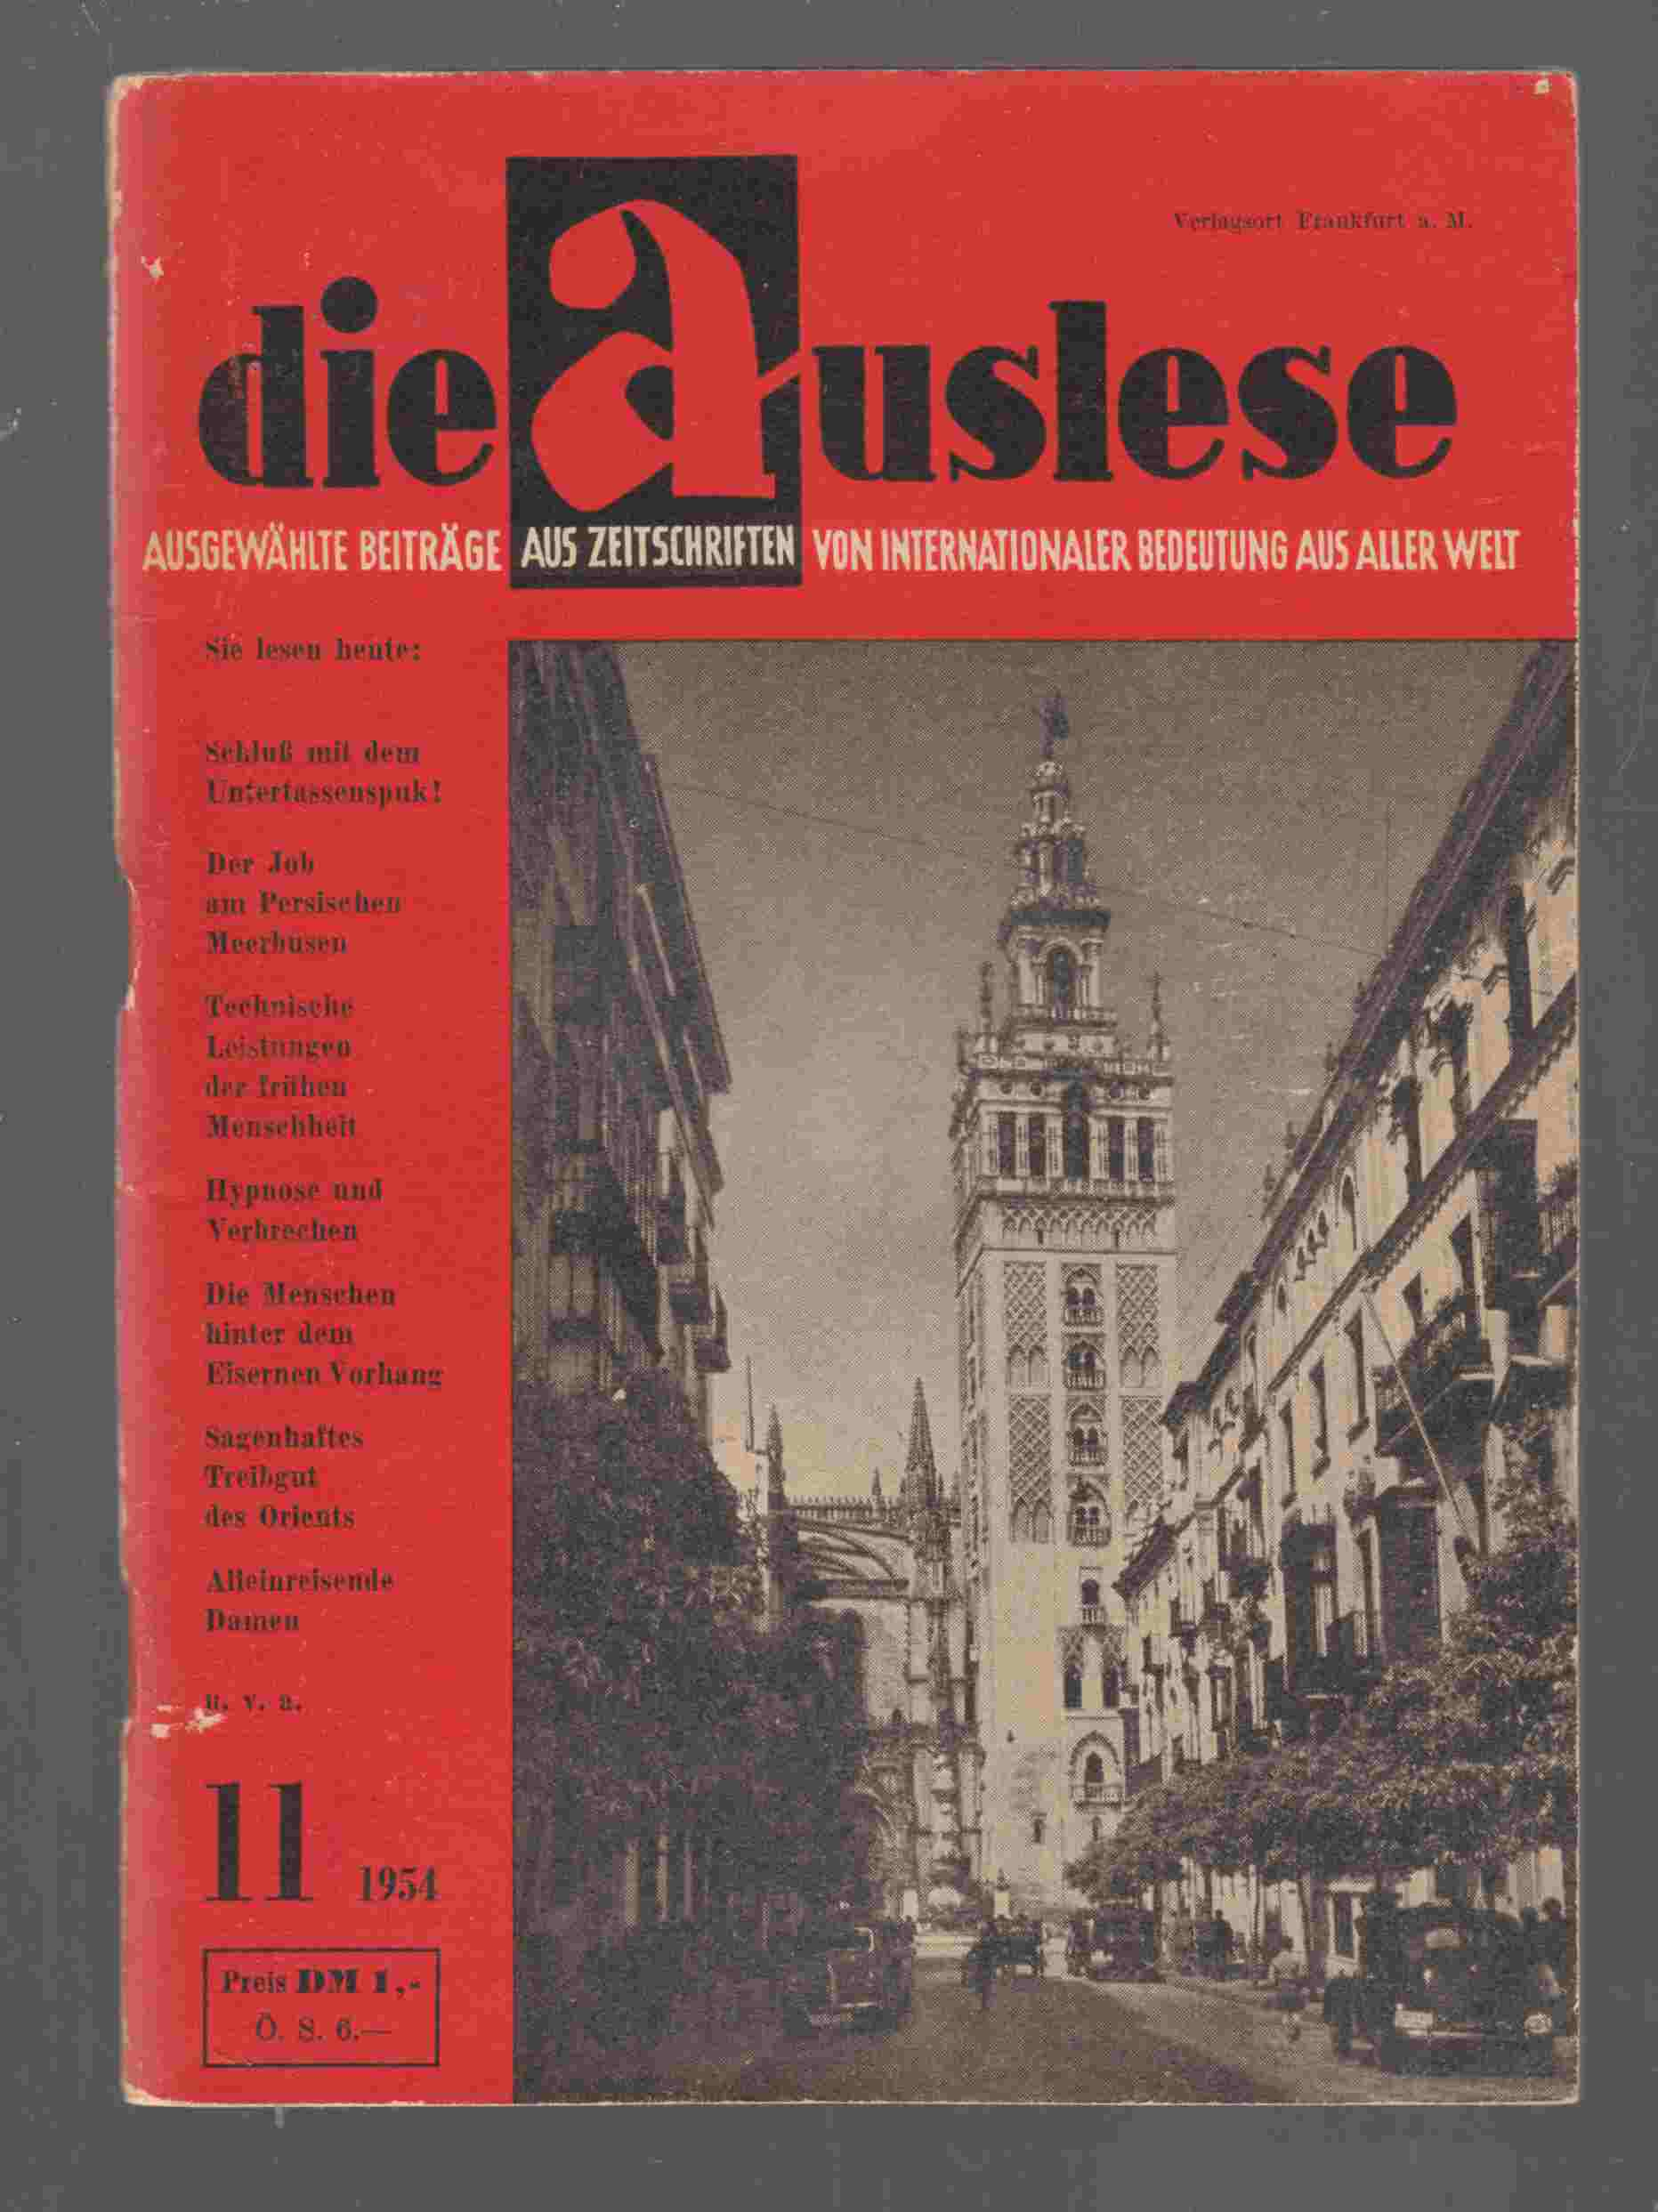 Image for Die Auslese